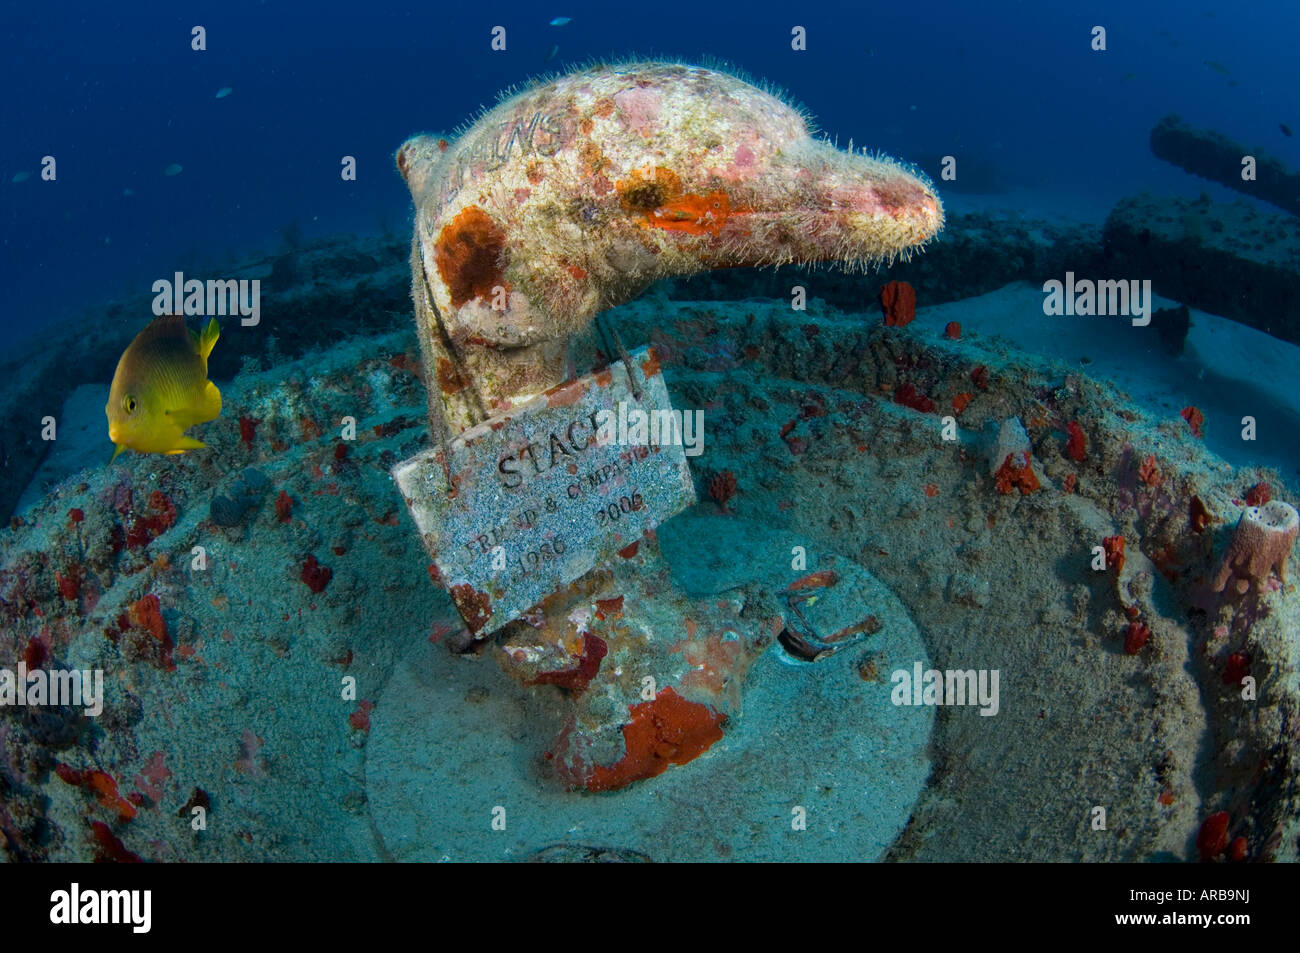 Underwater memorial for deceased person on a shipwreck in Jupiter FL - Stock Image